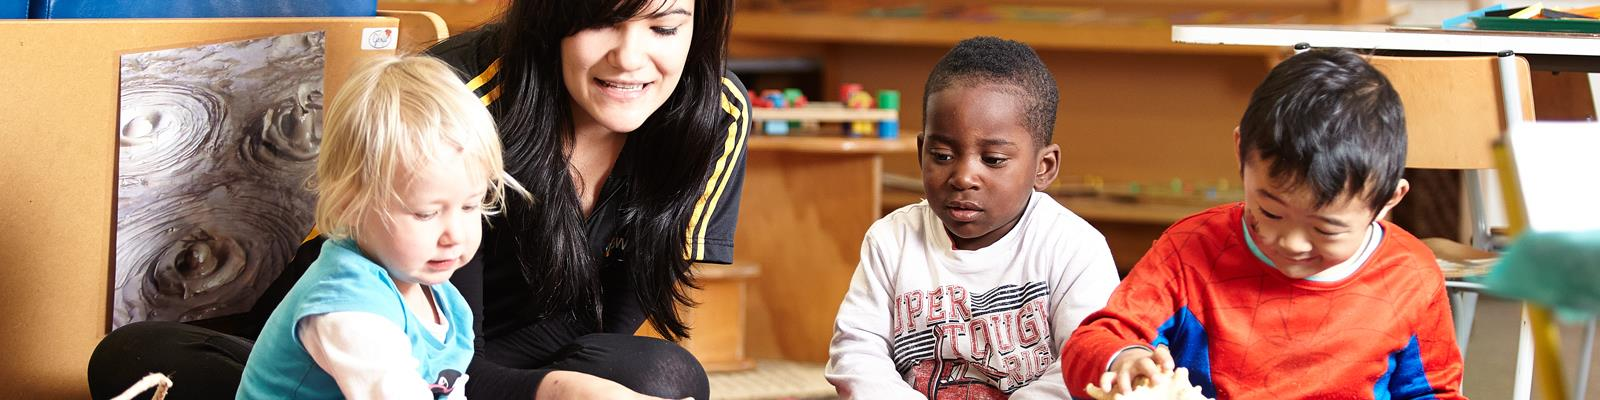 early childhood education educator teaching young children in a centre